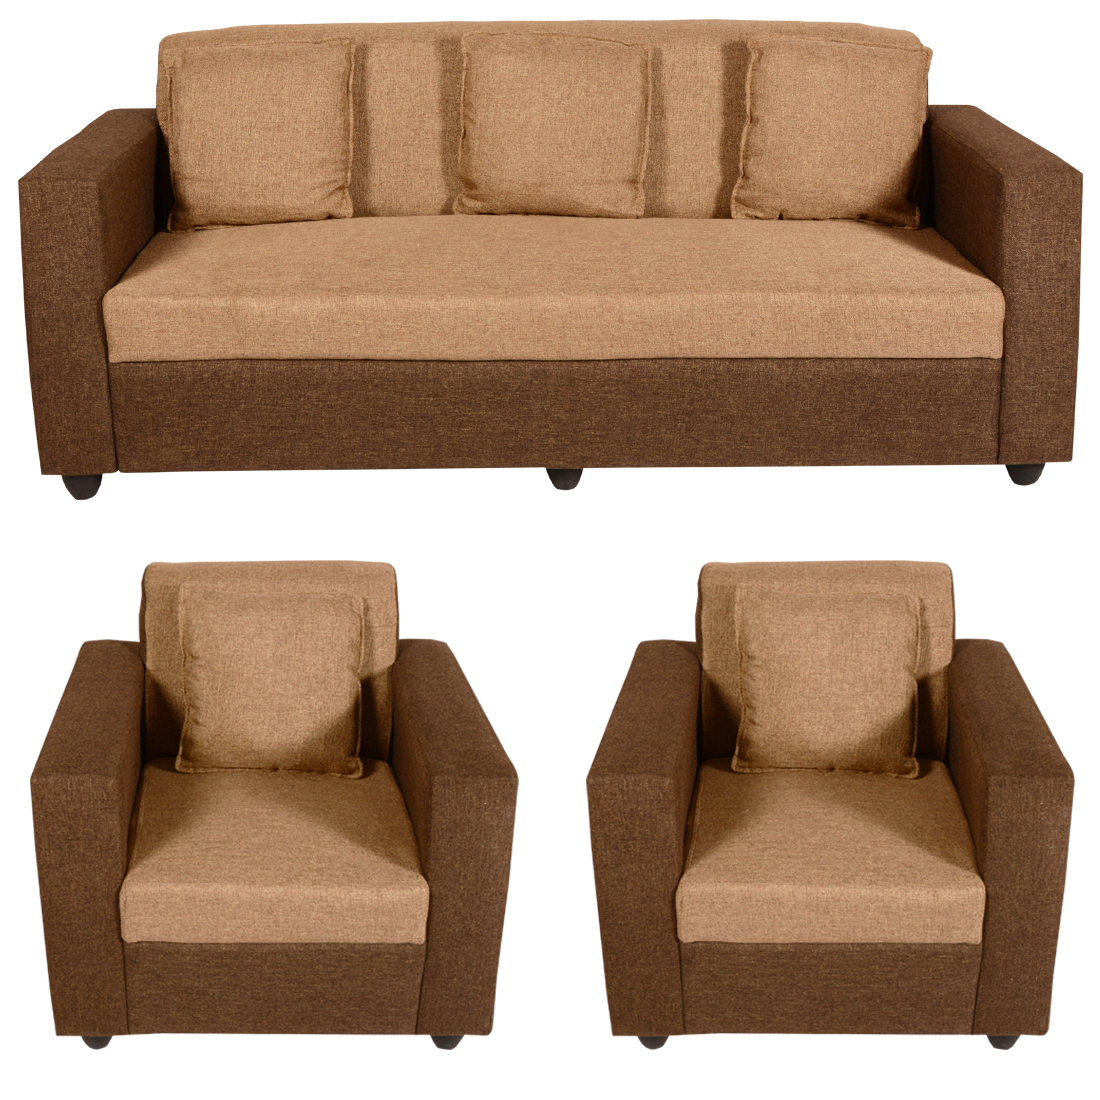 Sofa Set Online Bharat Lifestyle Lexus Fabric 3 1 1 Golden Brown Sofa Set